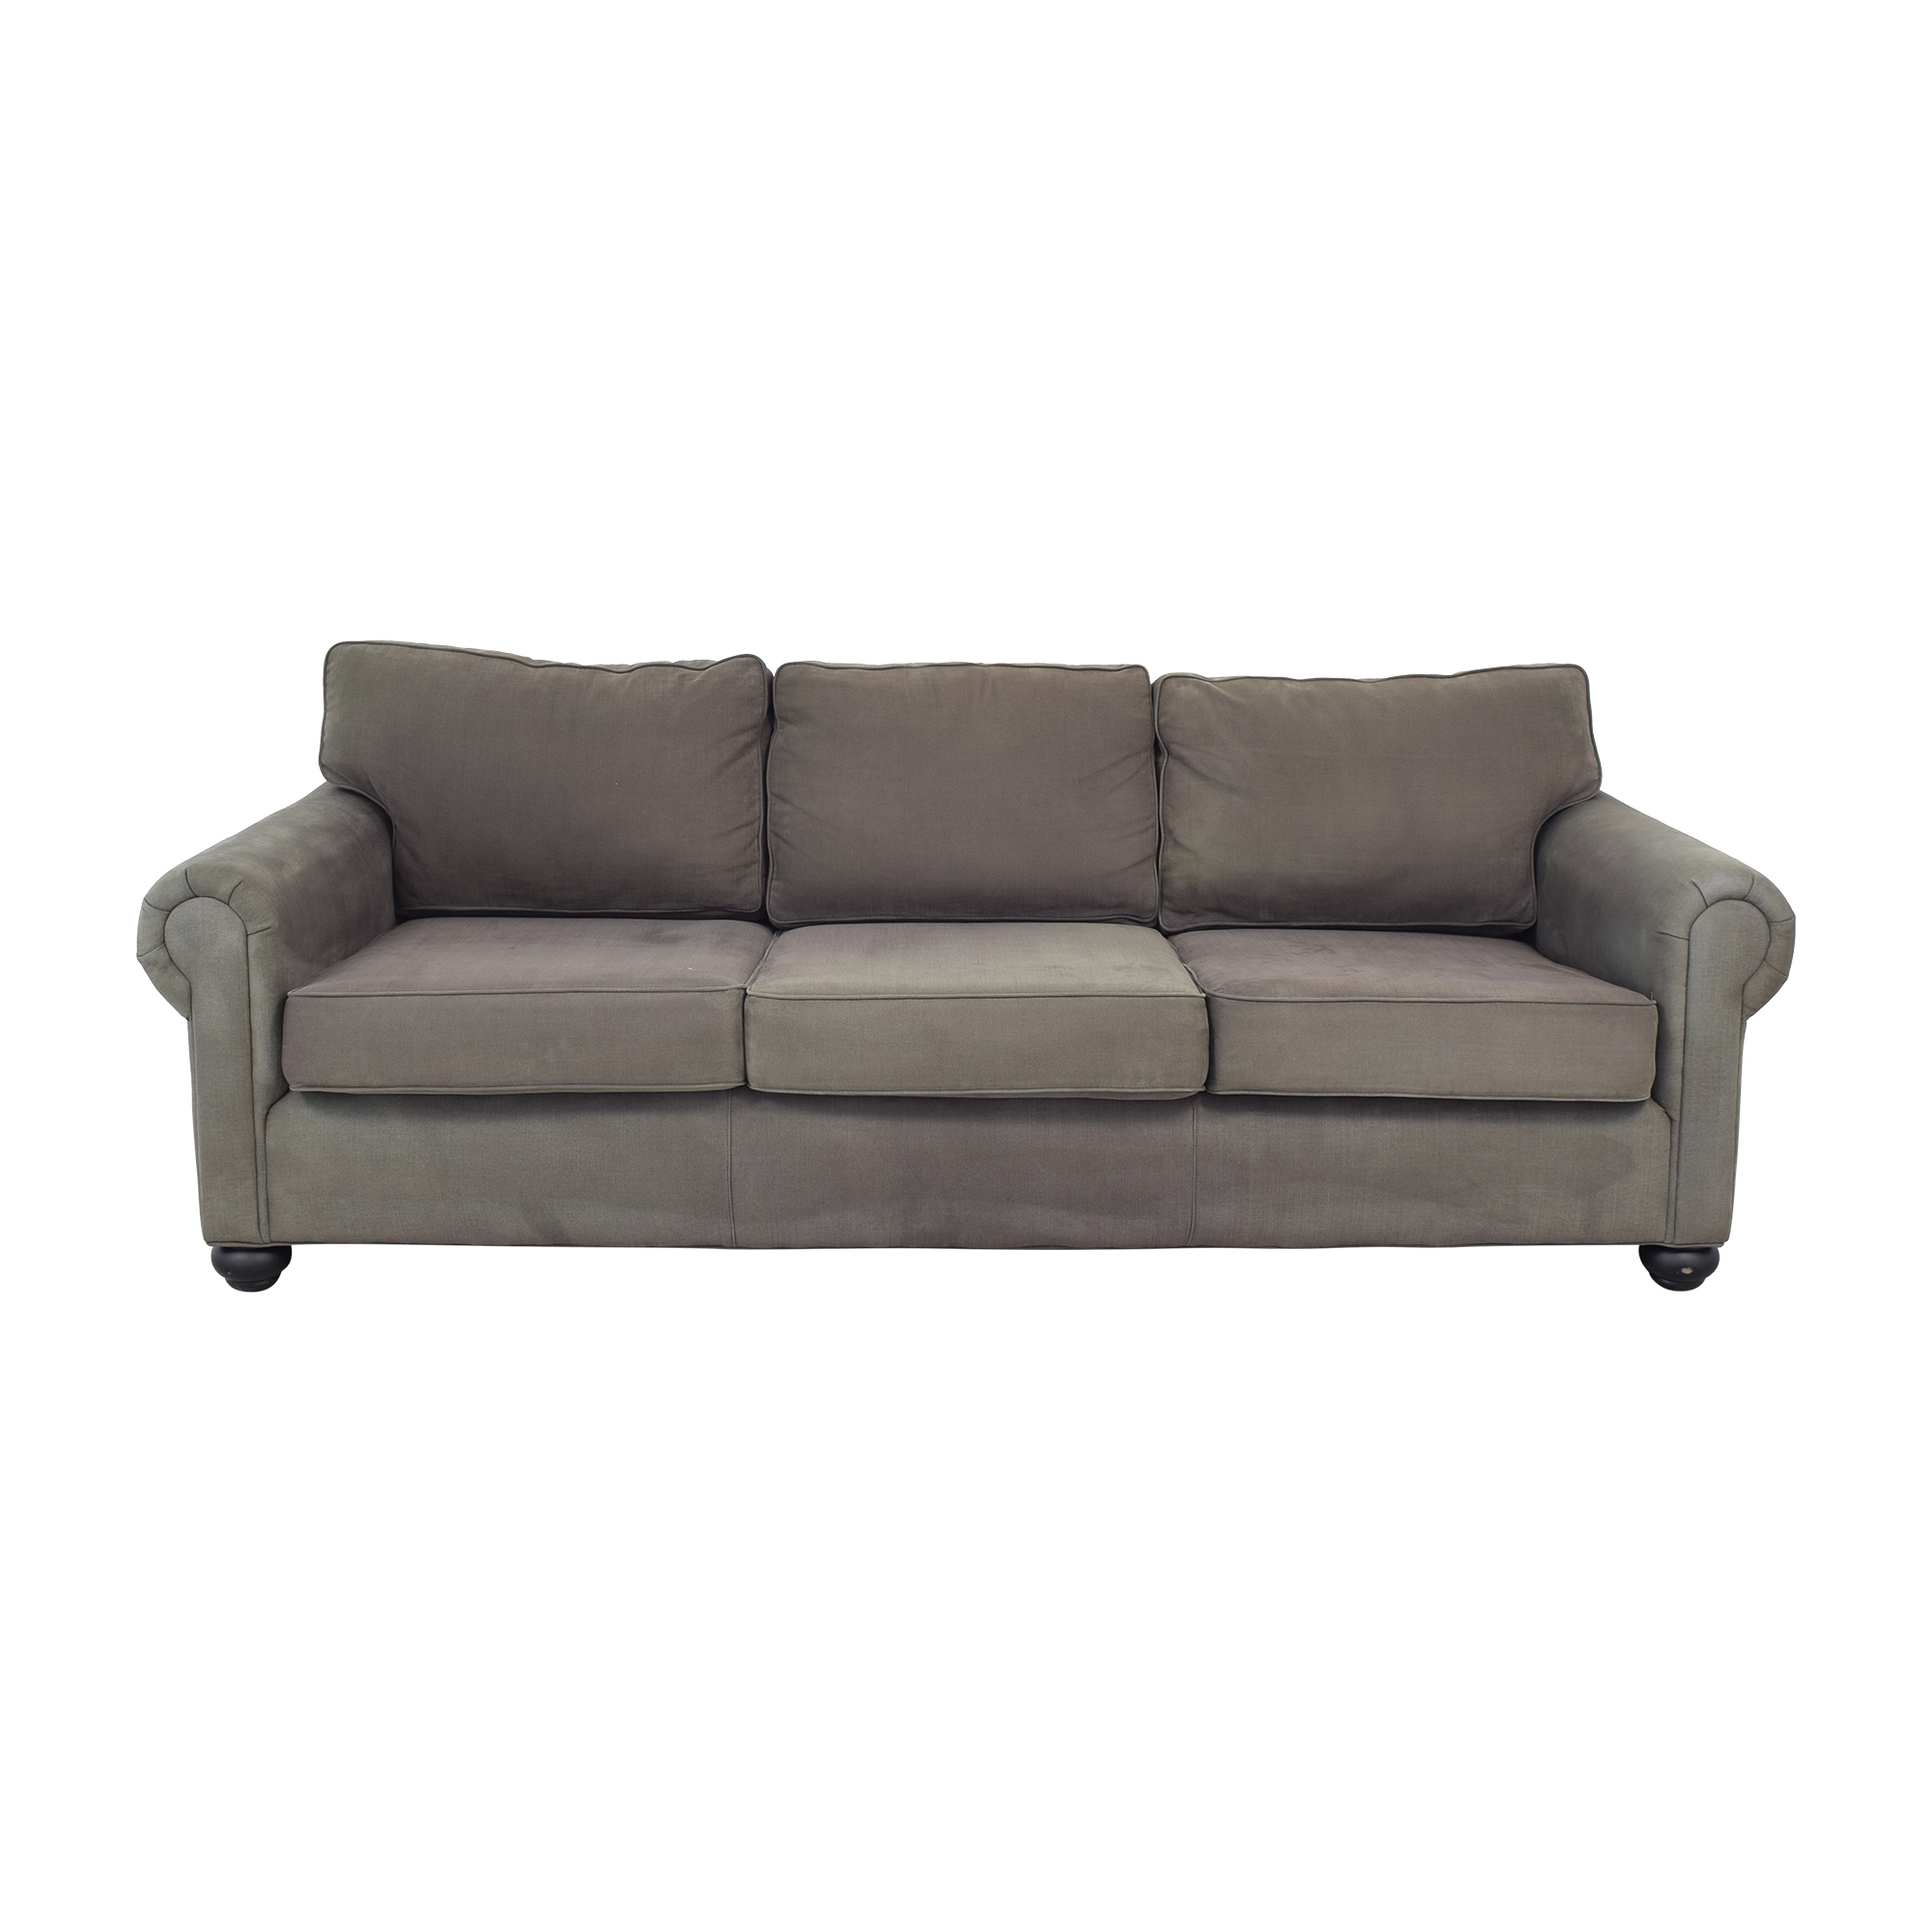 shop Restoration Hardware Original Lancaster Upholstered Sofa Restoration Hardware